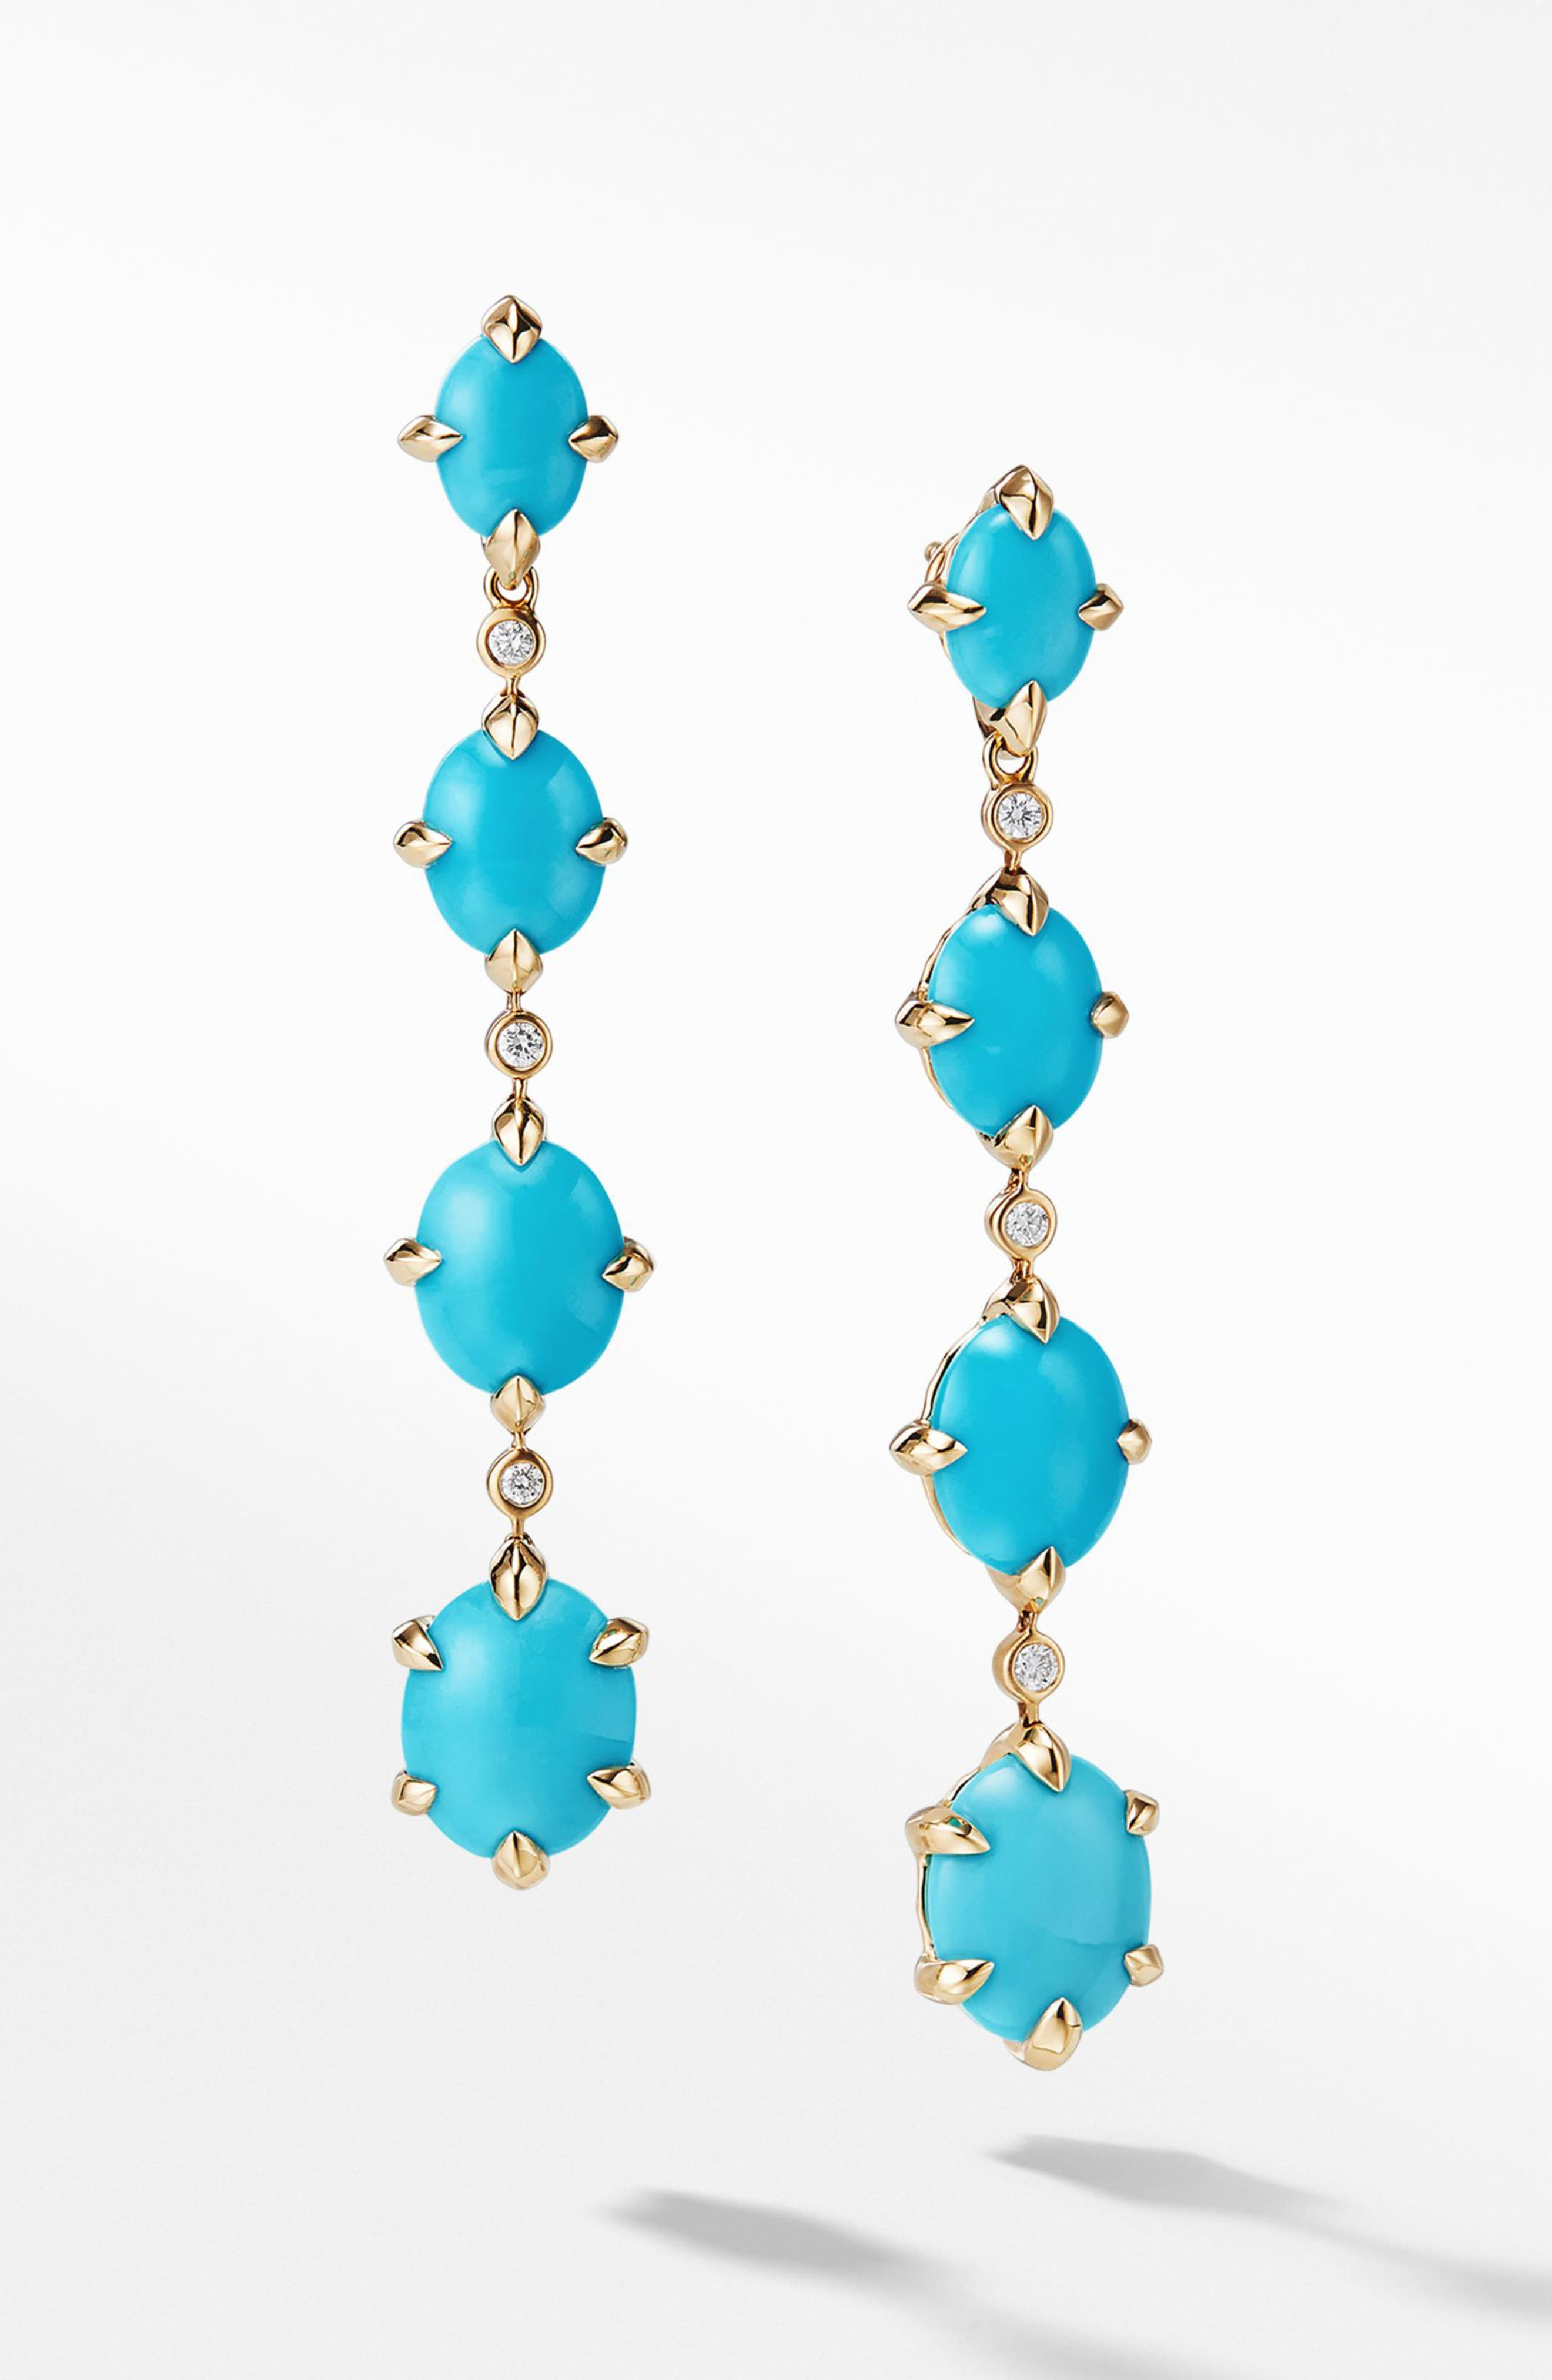 Chatelaine<sup>®</sup> 18k Gold Drop Earrings with Diamonds,                             Main thumbnail 1, color,                             GOLD/ DIAMOND/ TURQUOISE